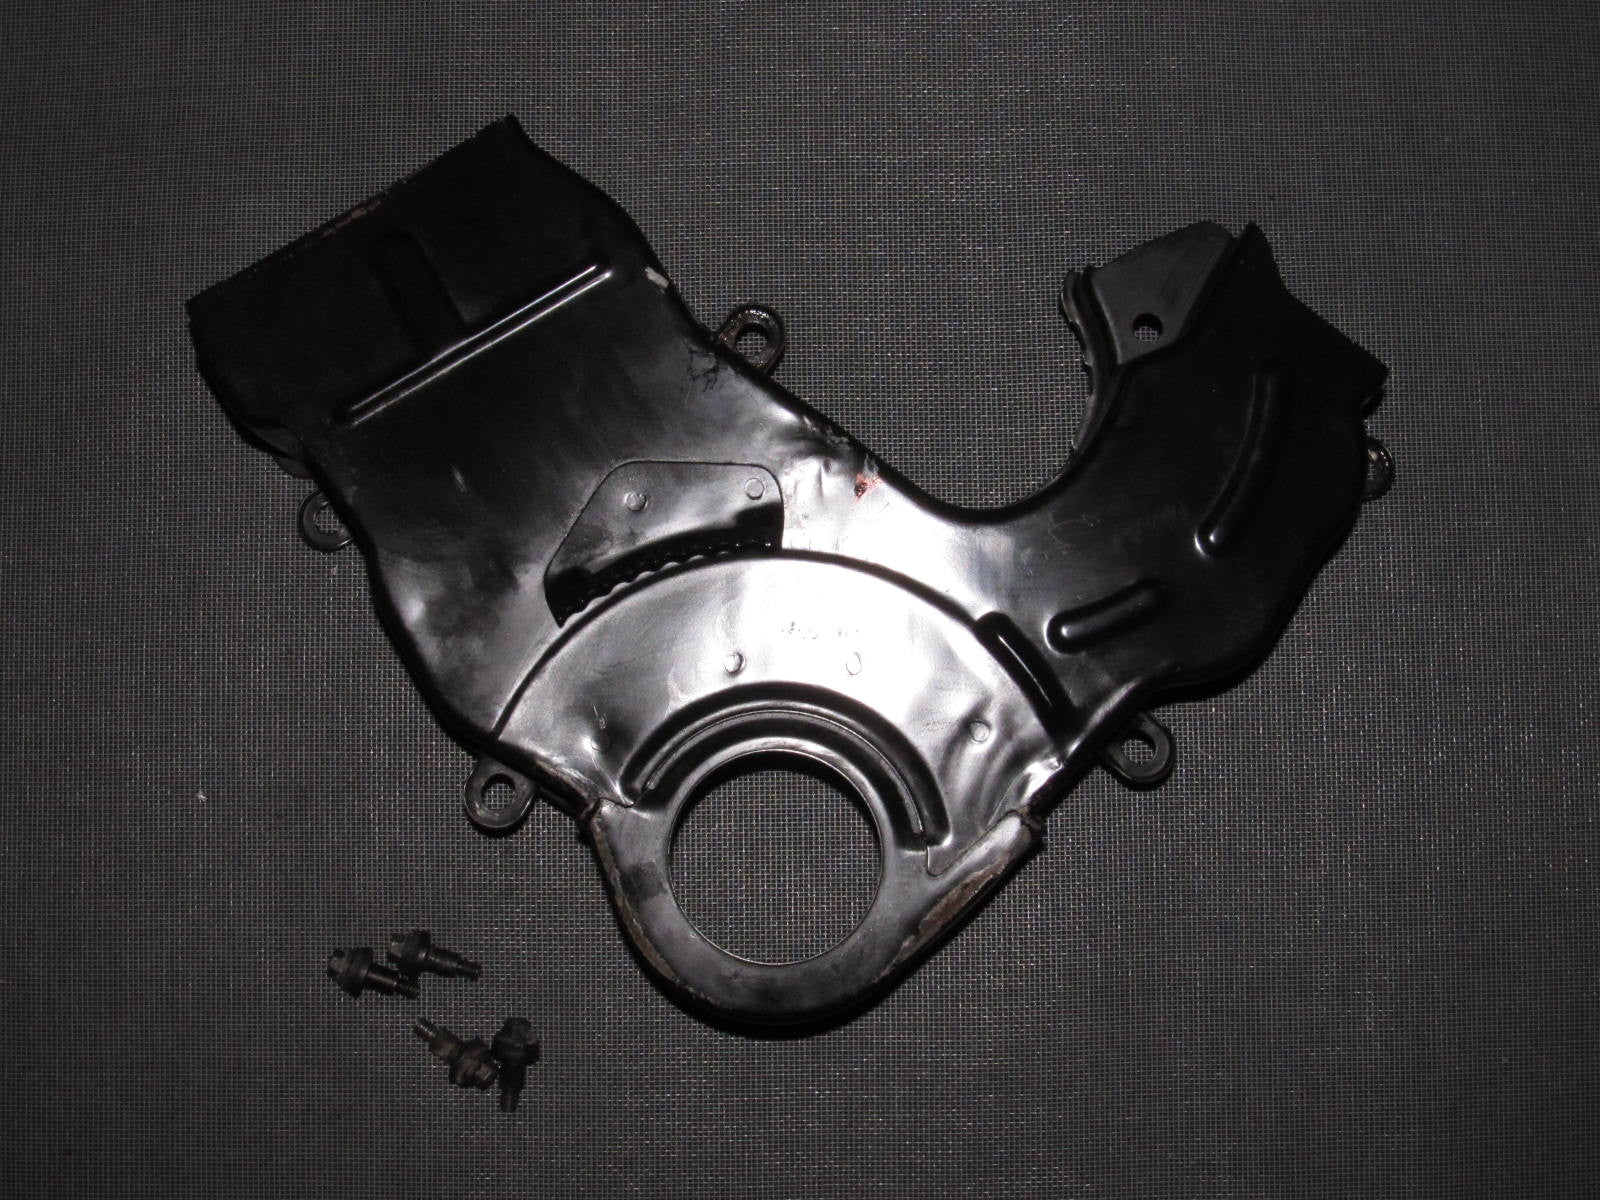 90 91 92 93 94 95 96 Nissan 300zx Lower Timing Belt Cover